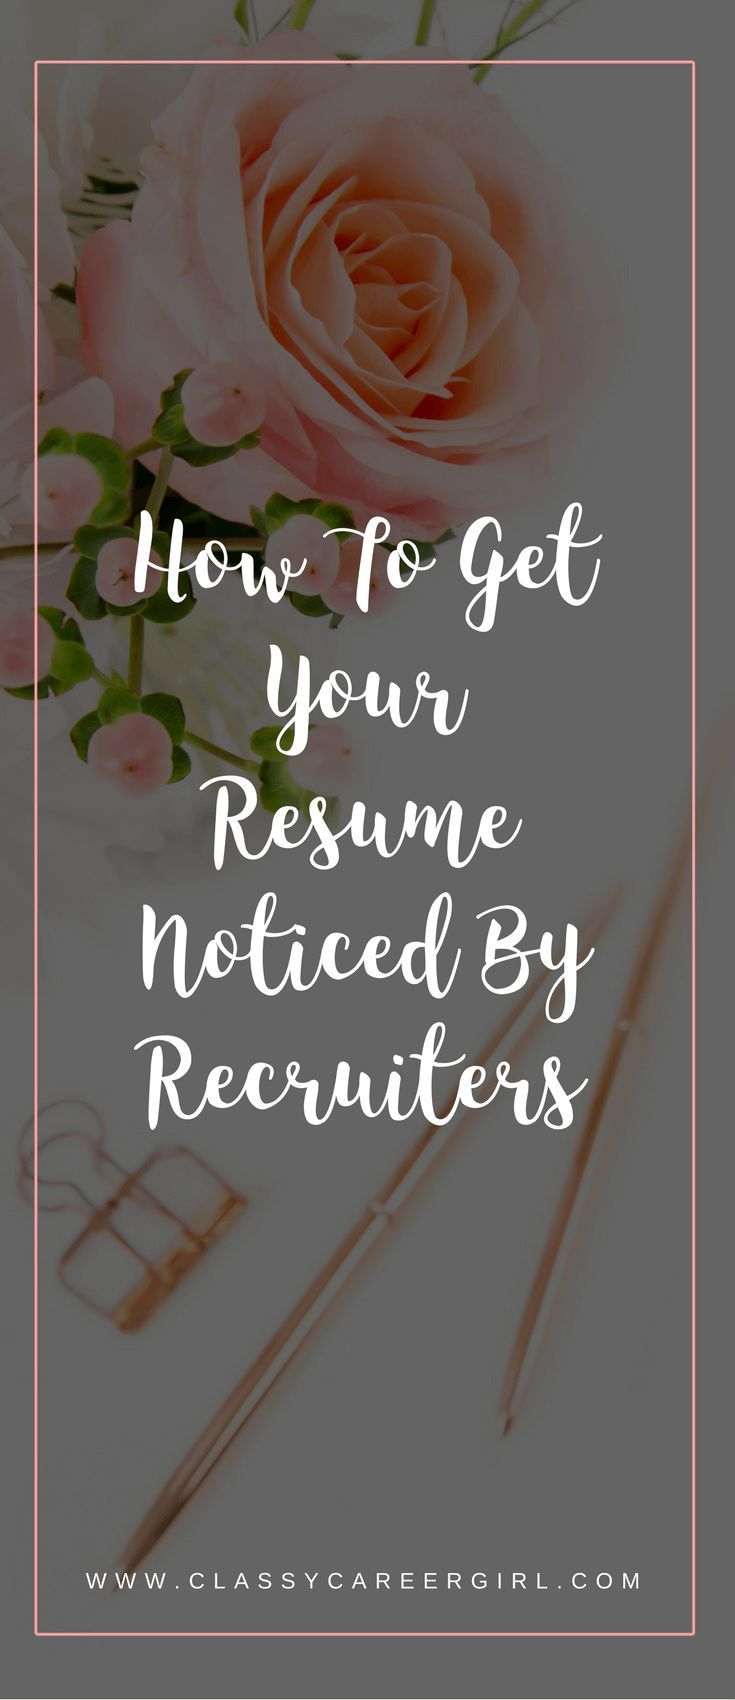 How To Get Your Resume Noticed By Recruiters Nailing The Job